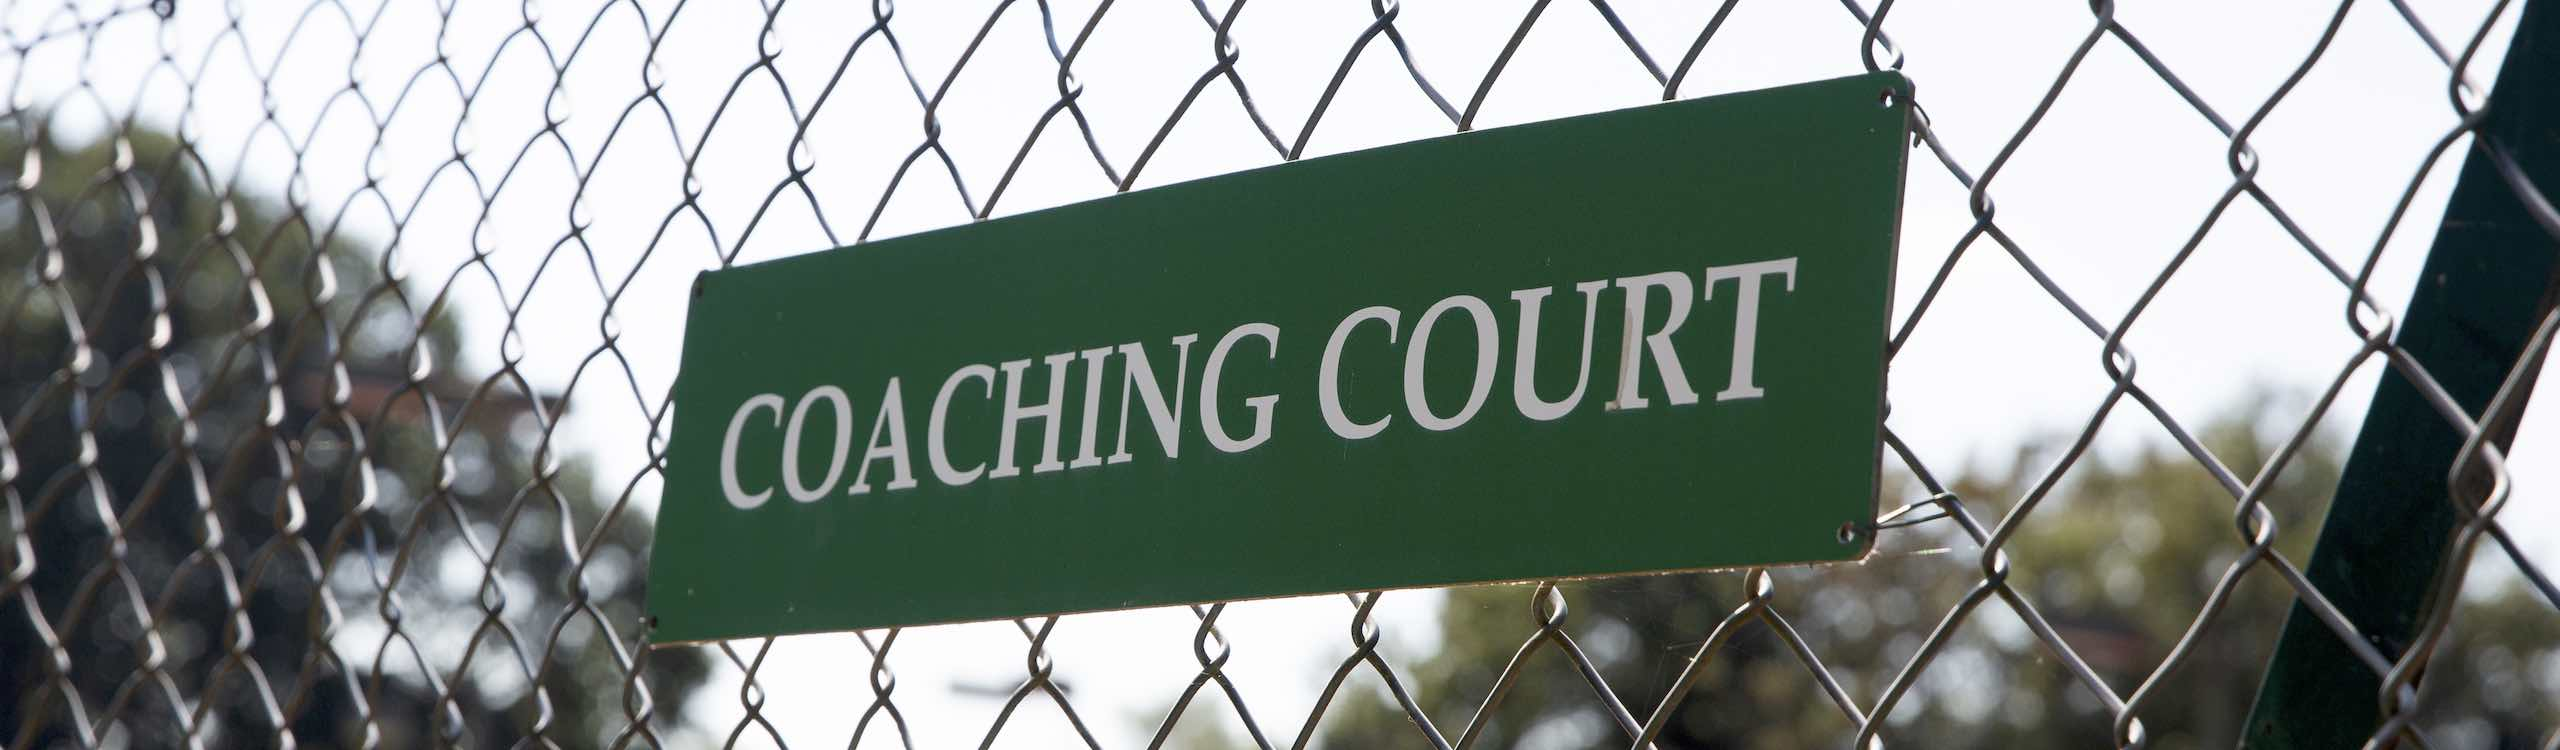 Coaching at Dorking Lawn Tennis & Squash Club